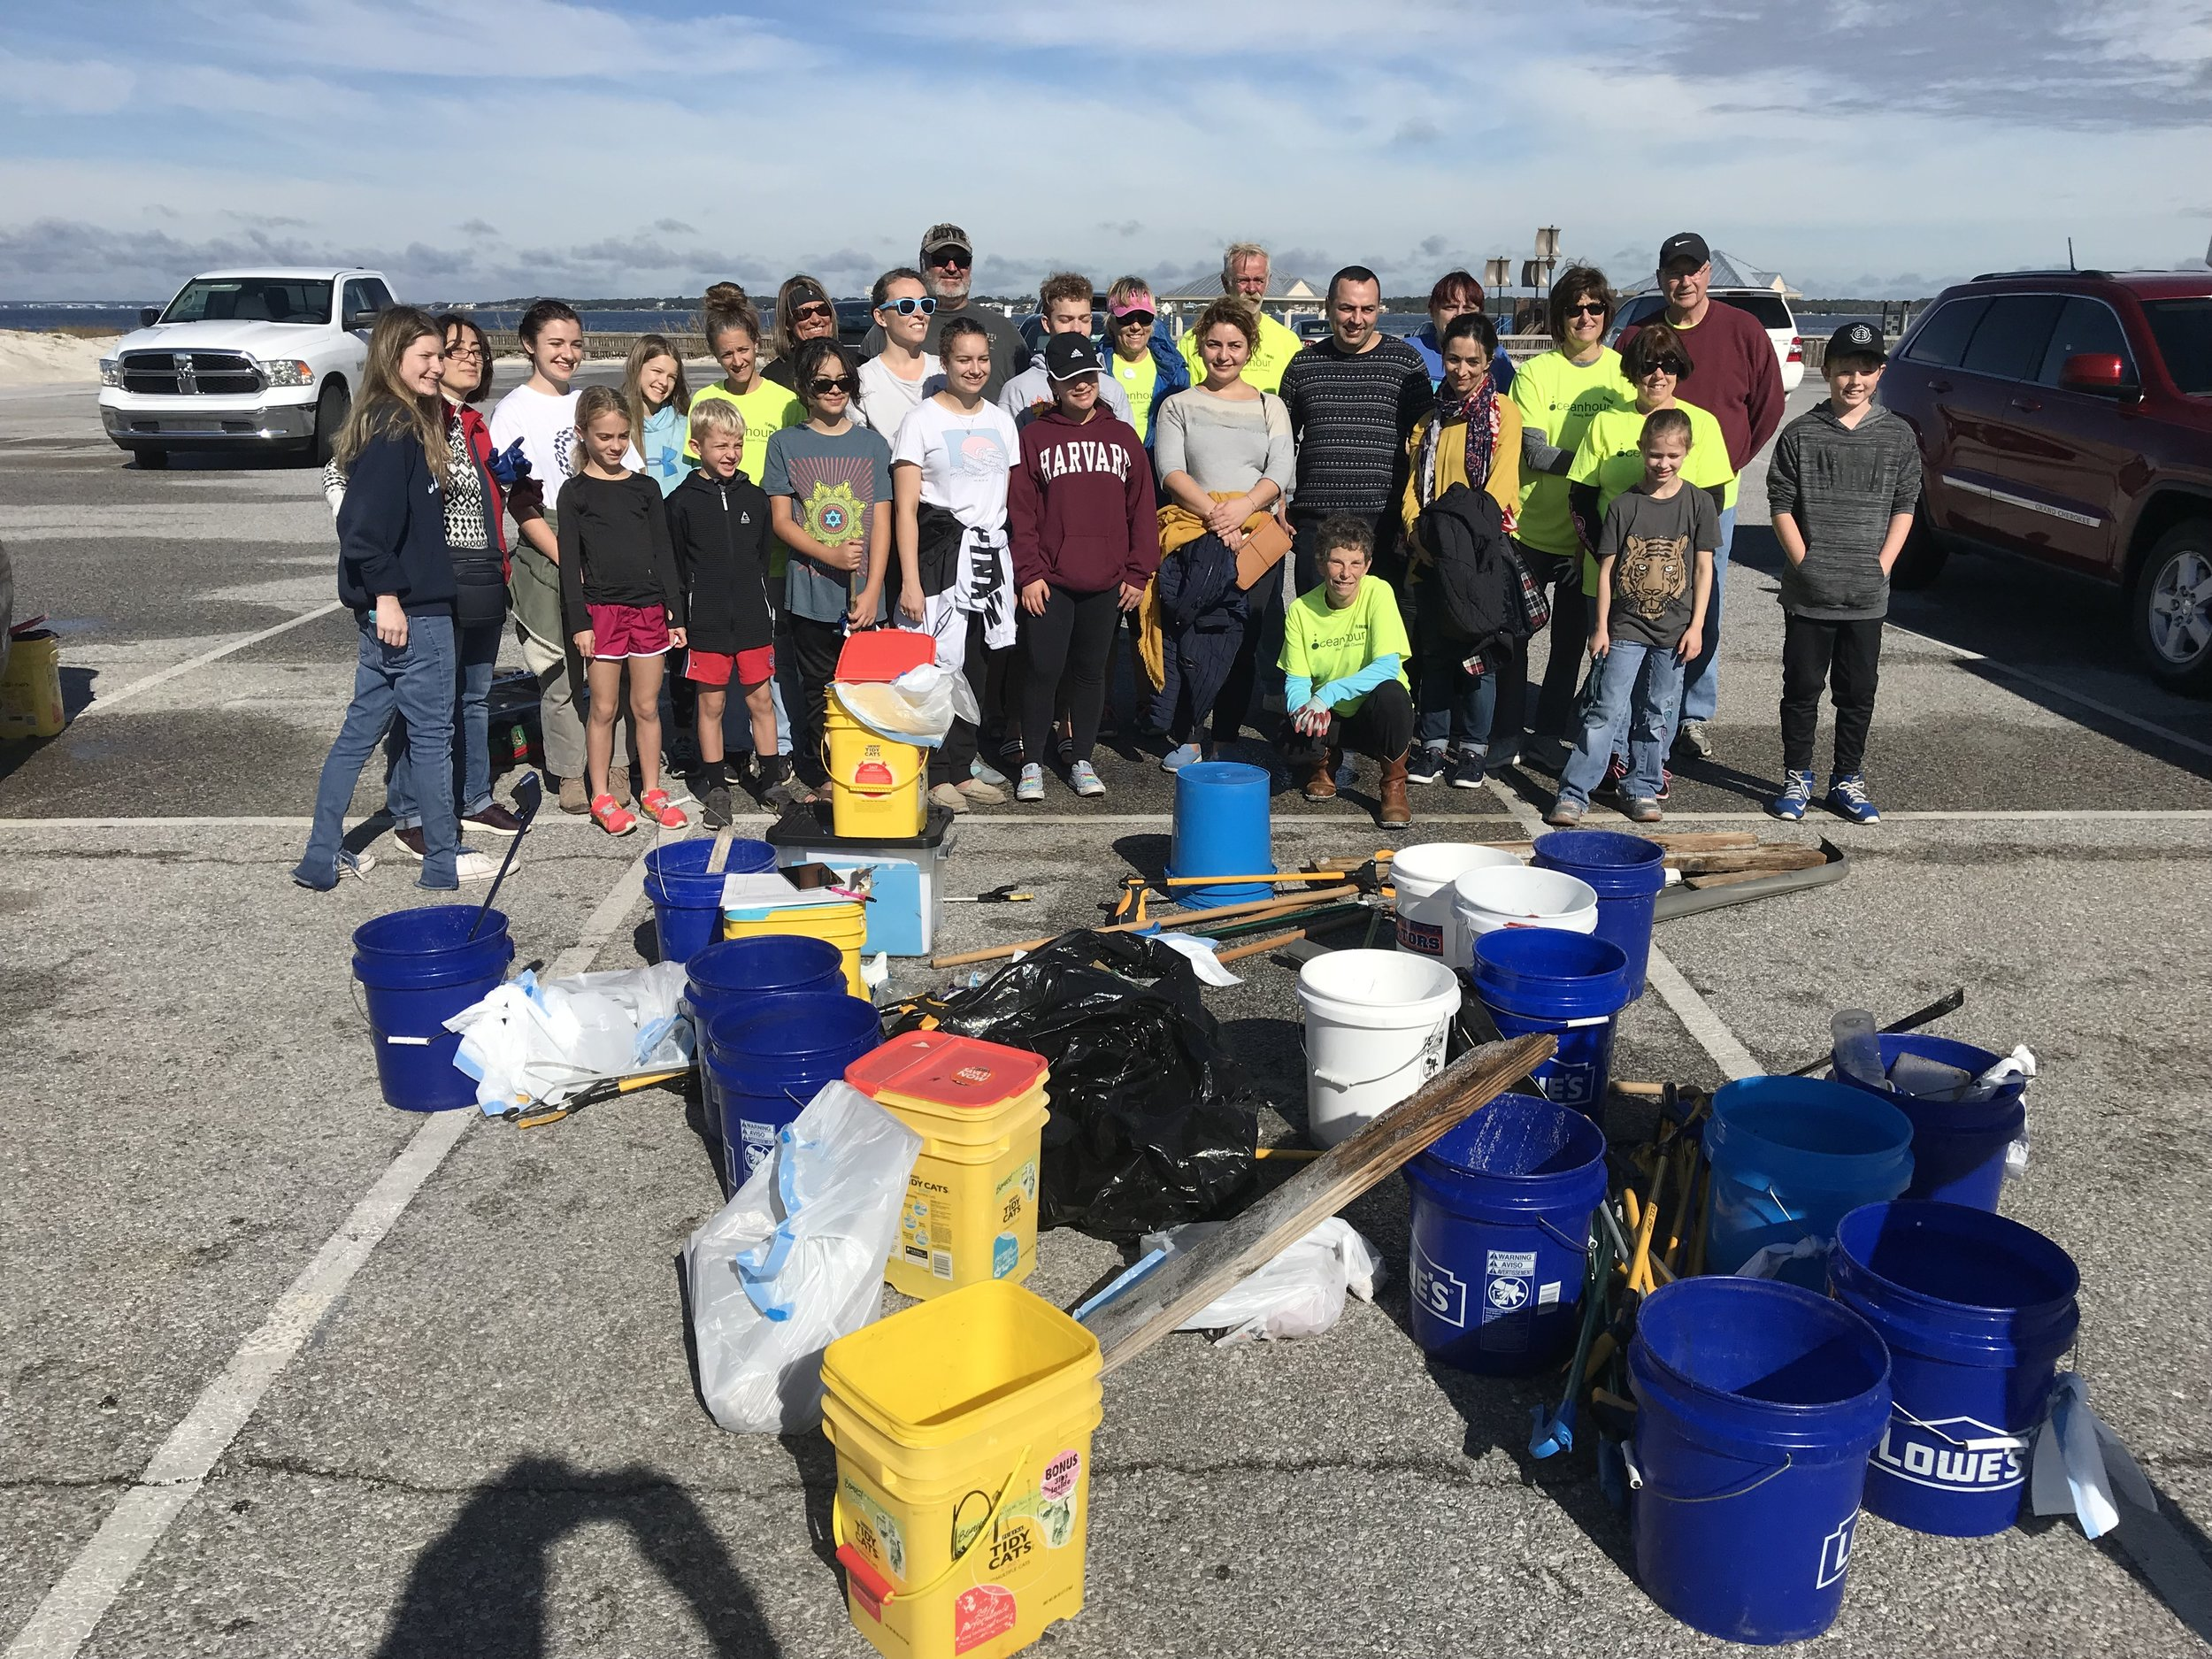 """- One volunteer took 3,378 steps over the hour cleanup. Thanks to the volunteers from the """"Gulf Coast Citizenry Diplomacy Council"""" for helping out - collected 92 lbs by 31 people.After editing excel spreadsheet Ocean Hour FL has collected 15,314 lbs of debris!"""